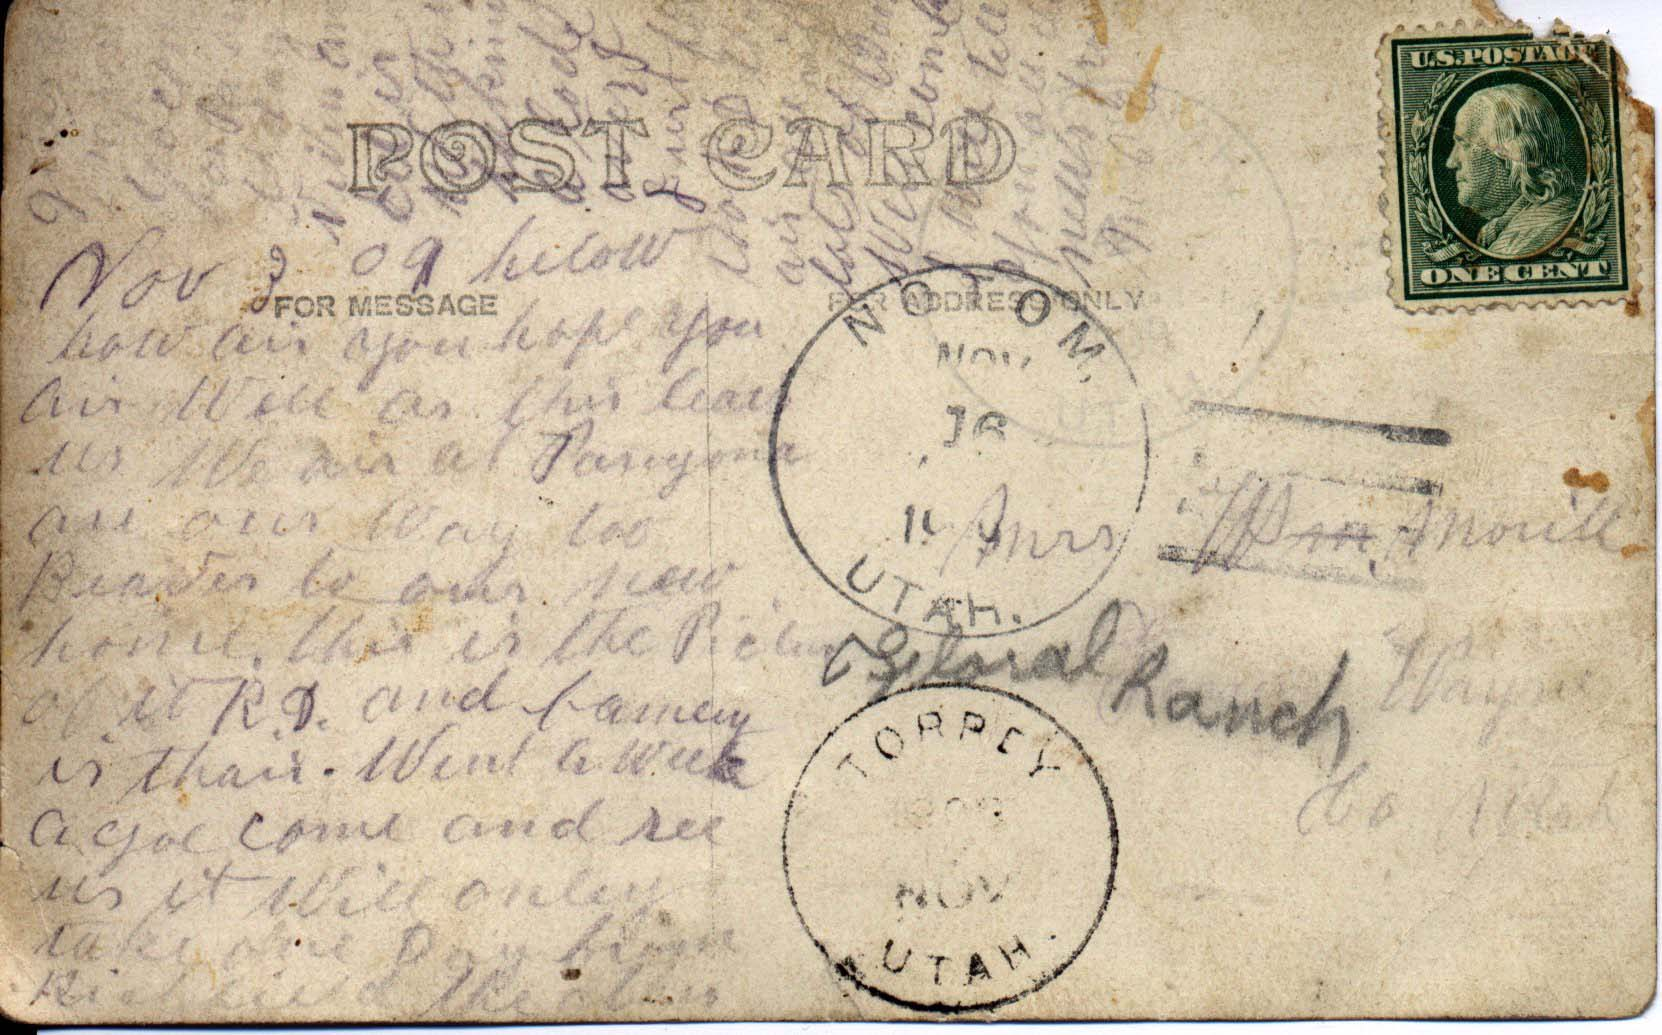 Will Morrill is the foreman for Arthur Eugene Hanks on the Floral Ranch after Ephraim Hanks' death. In possession of Sherry M. Smith.